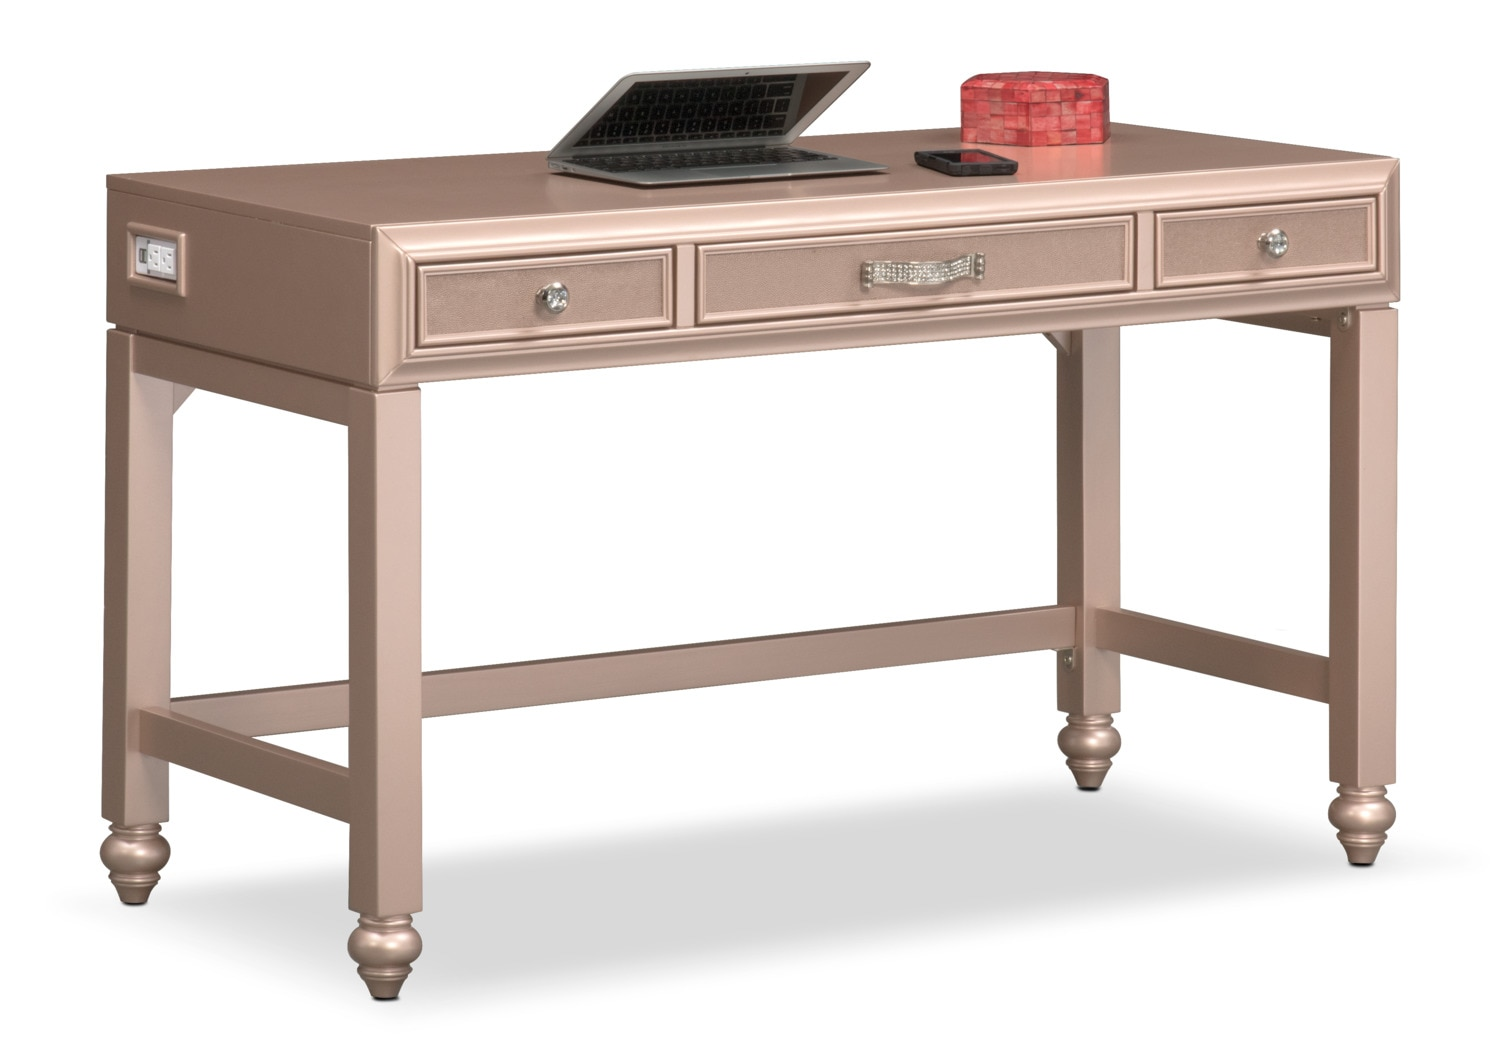 Kids Furniture - Serena Vanity Desk - Rose Quartz